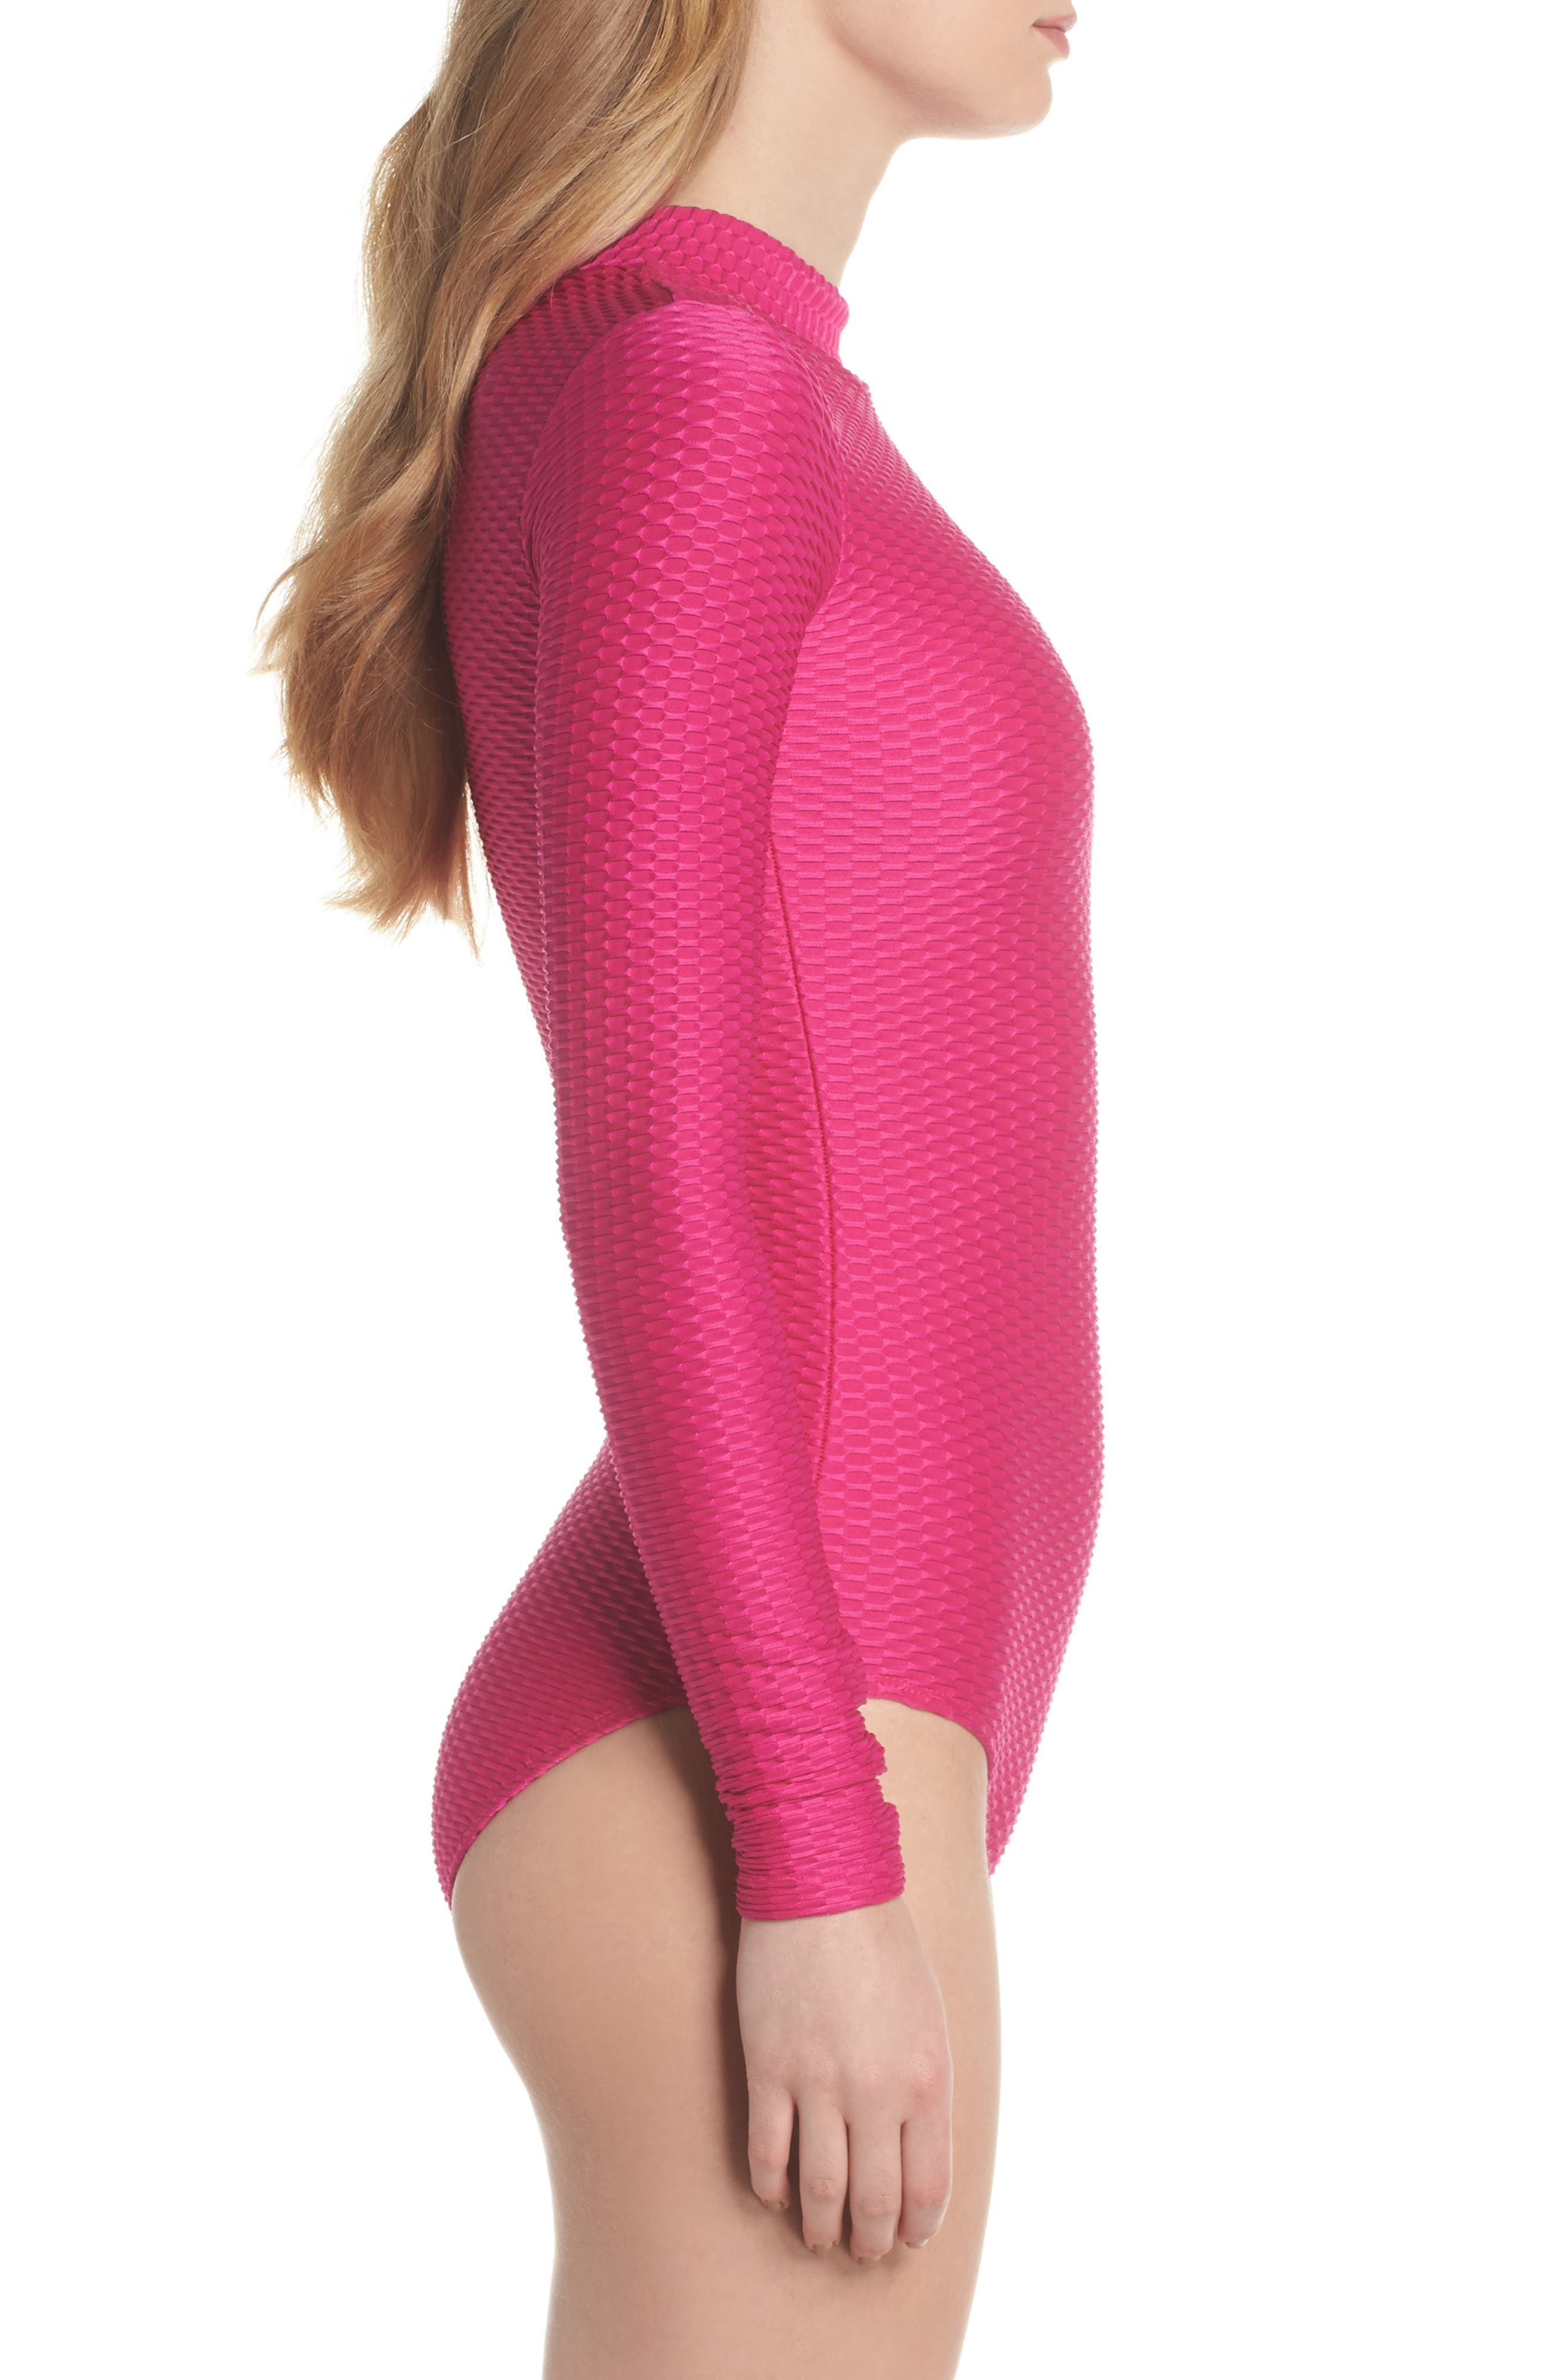 Long Sleeve One-Piece Swimsuit,                             Alternate thumbnail 3, color,                             670